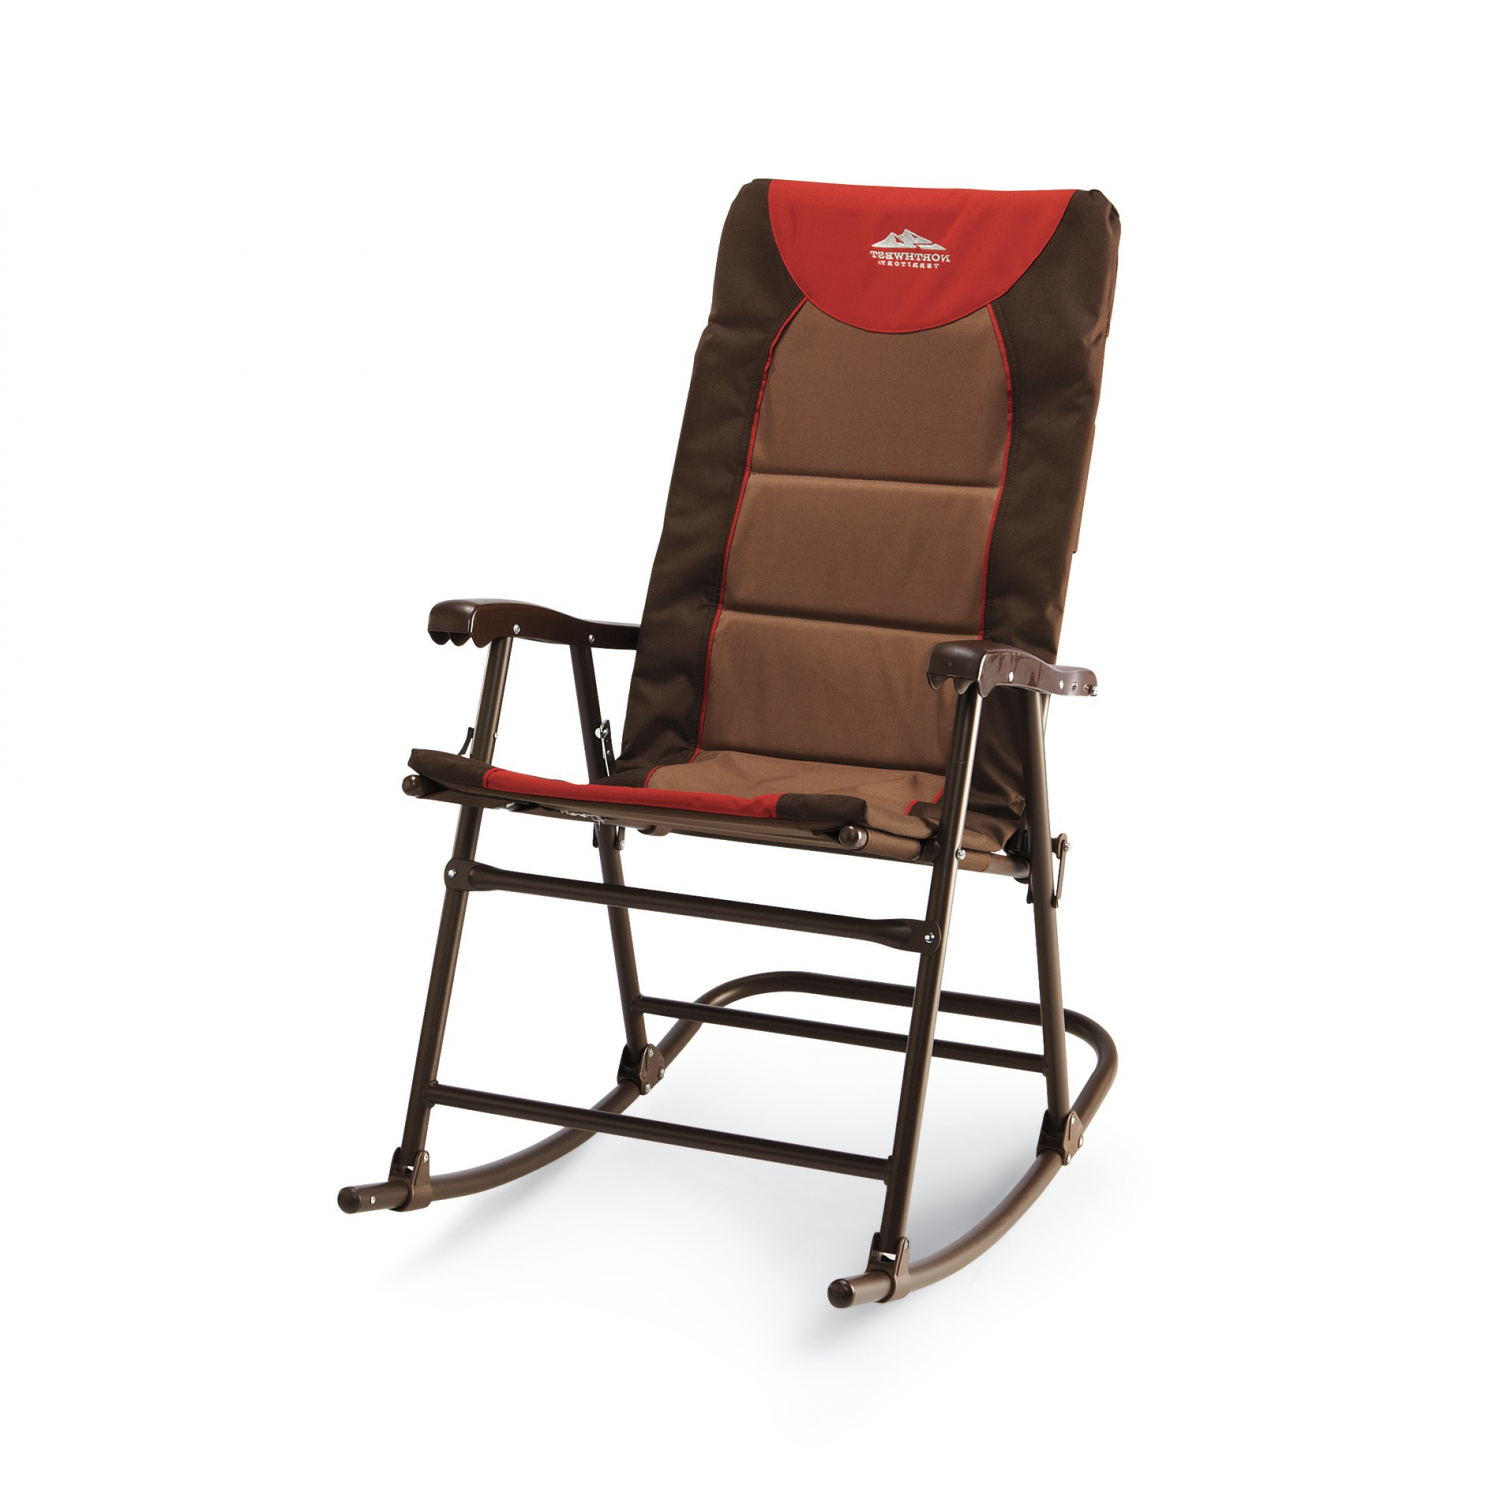 Fine Details About Folding Rocking Chair Durable Ripstop Fabric Locking Steel Frame And Lightweight Forskolin Free Trial Chair Design Images Forskolin Free Trialorg